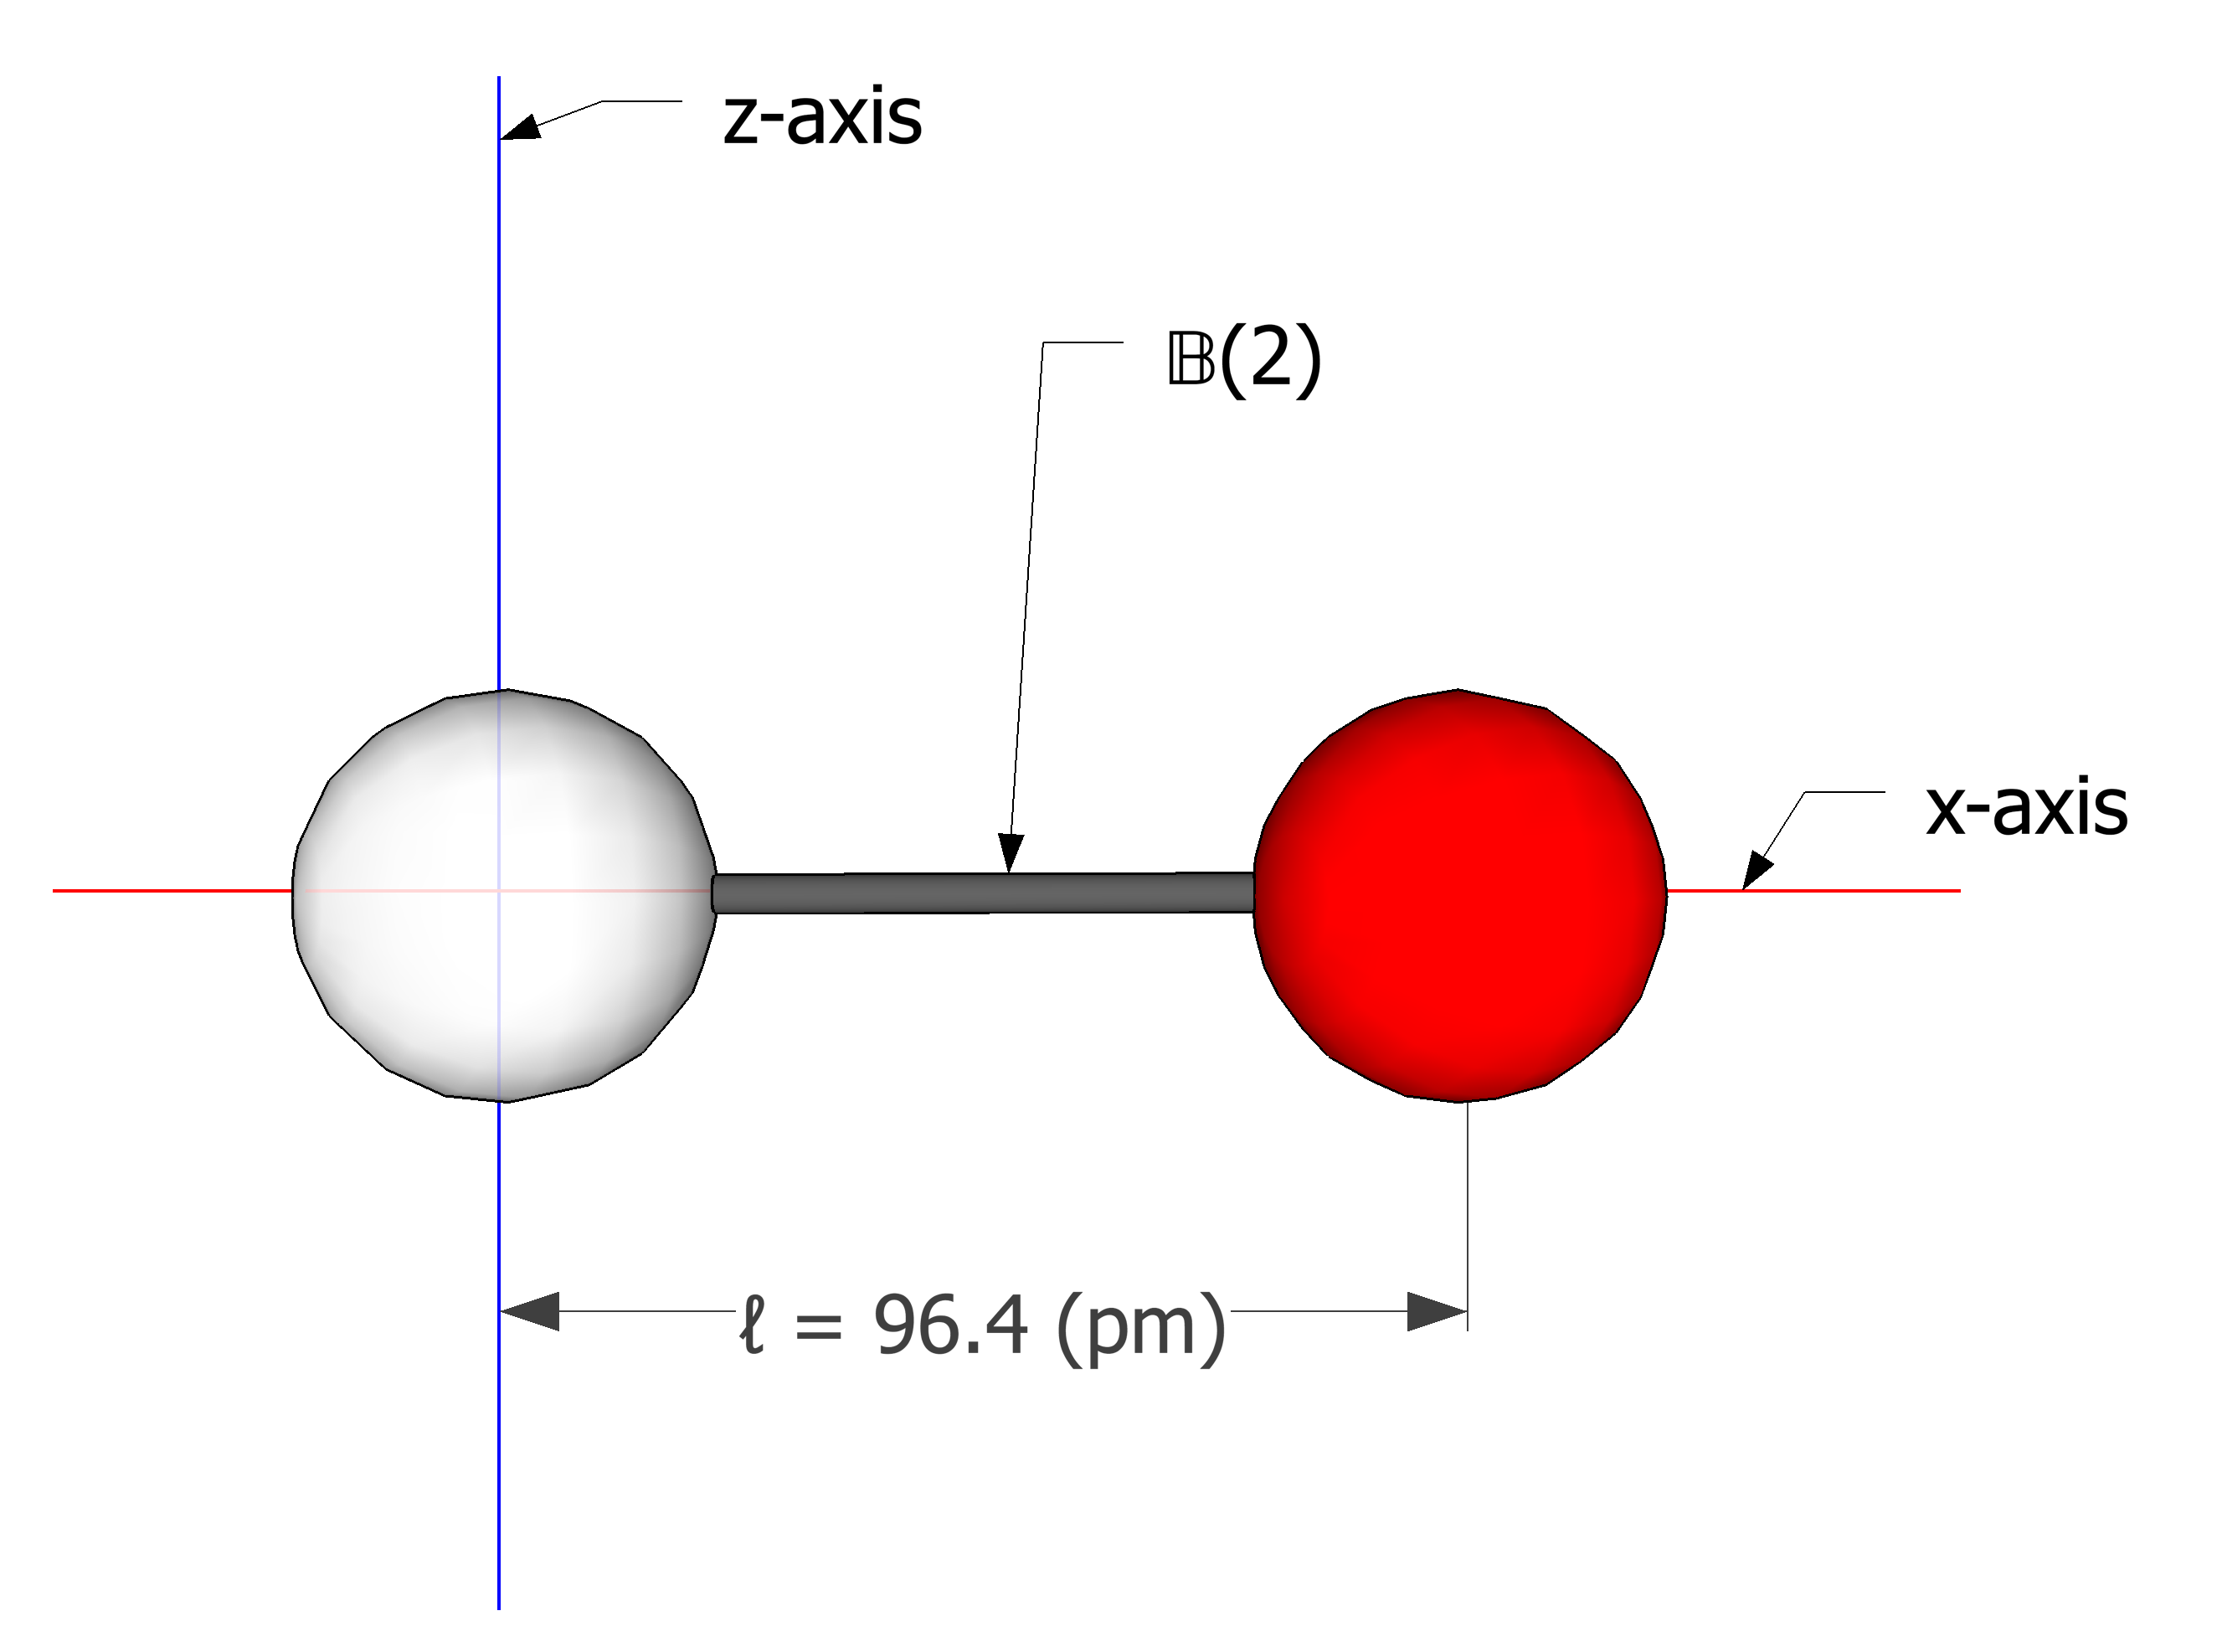 A two-dimensional Cartesian coordinate system defined by the two atoms that form a hydroxide ion. The red ball represents oxygen.